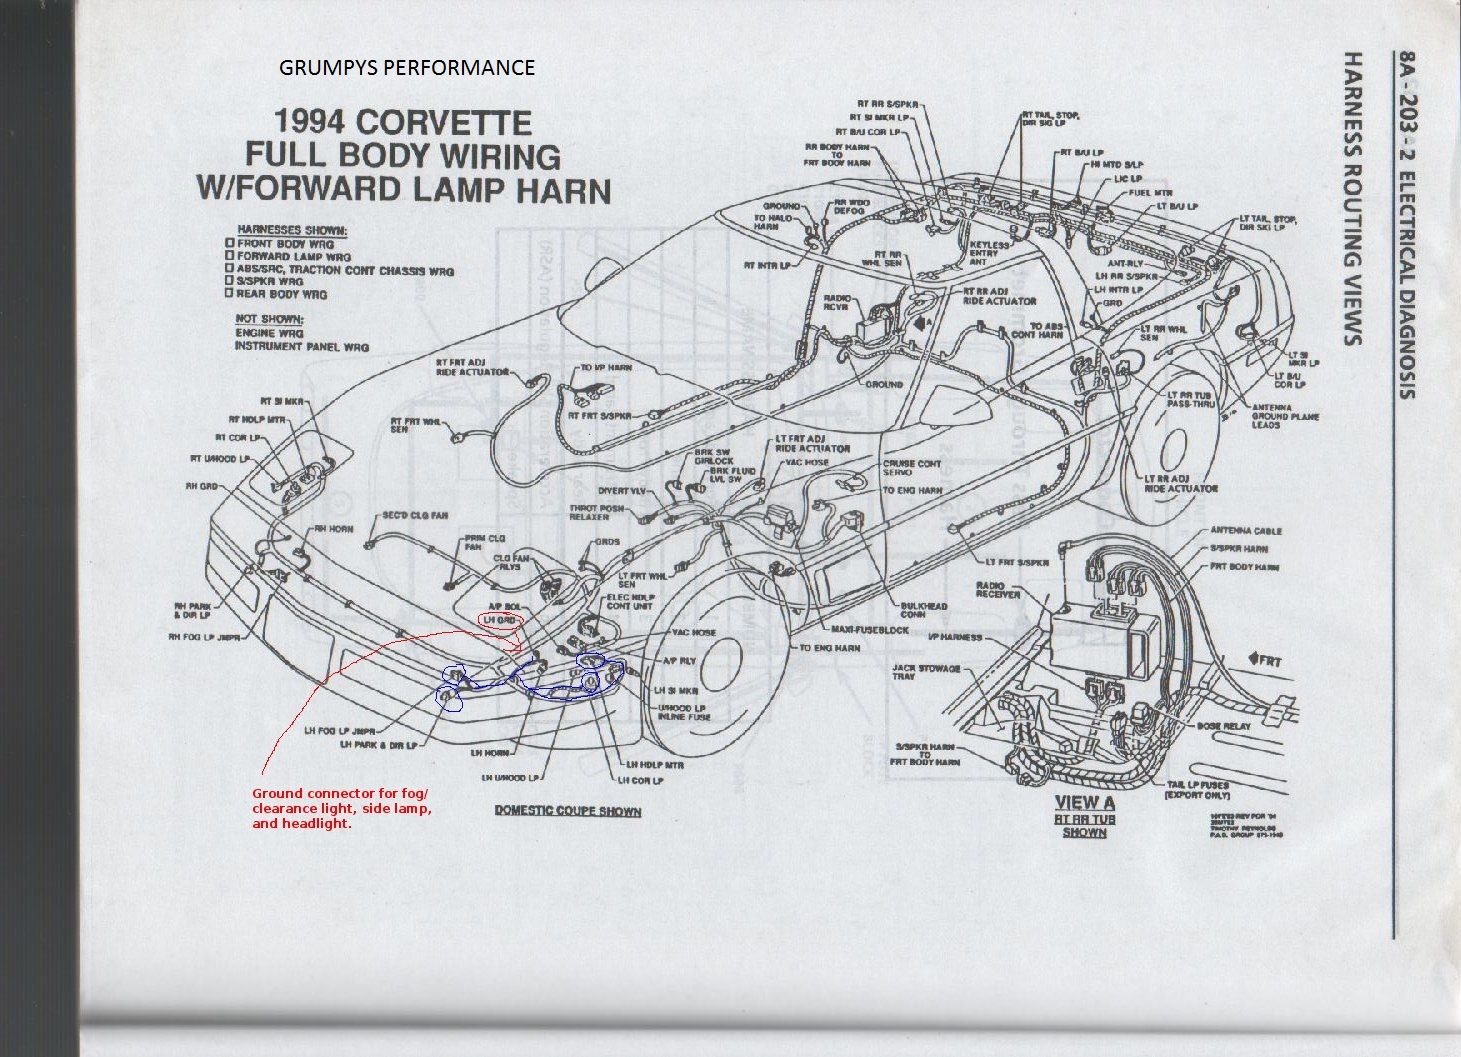 C4 Corvette Engine Wiring Diagram - House Wiring Diagram Symbols •